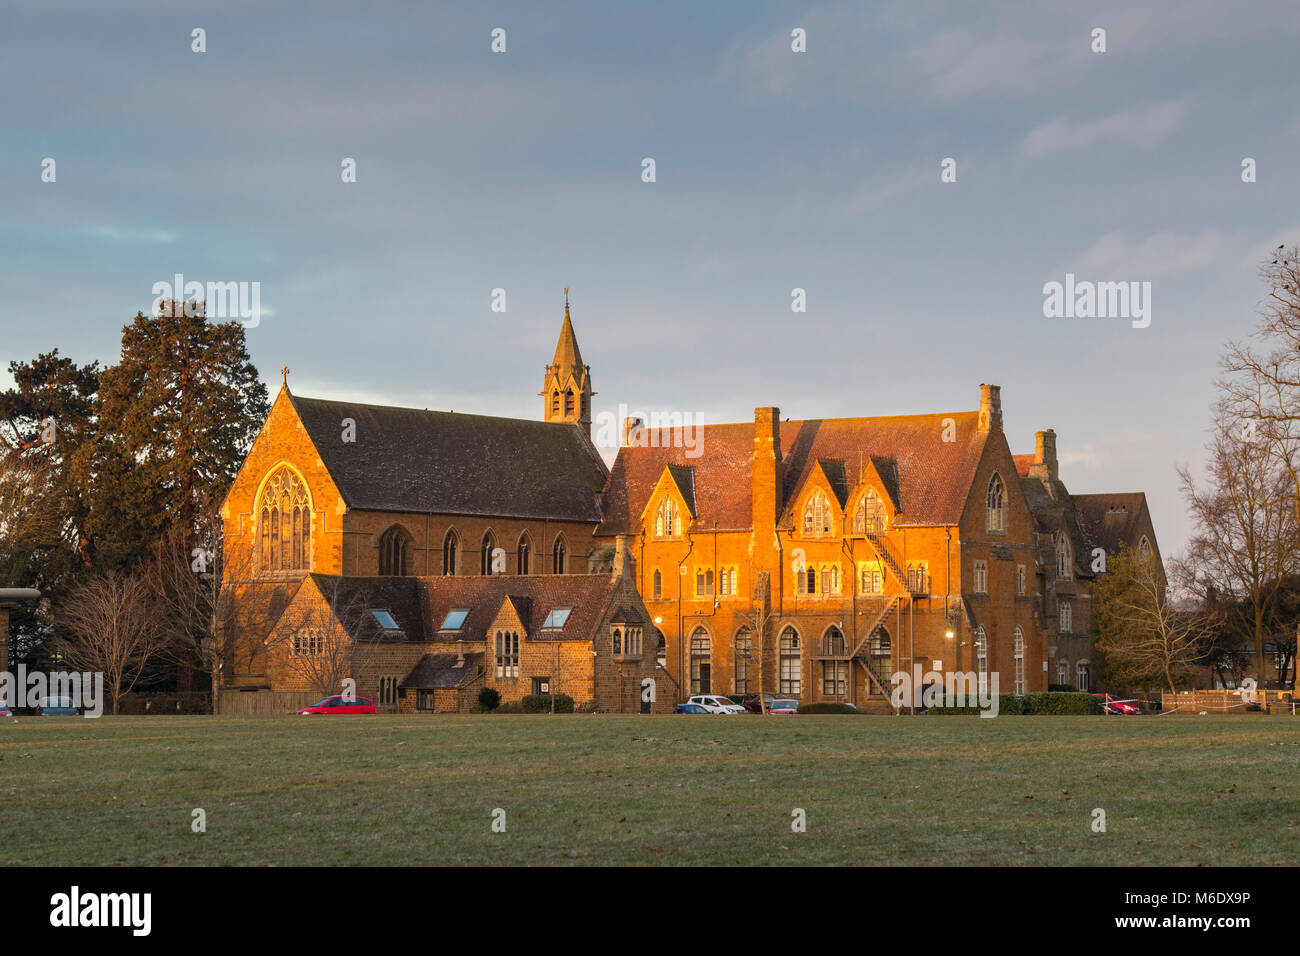 Bloxham School / All Saints' School à la lumière du soleil d'hiver tôt le matin. Bloxham, Photo Stock